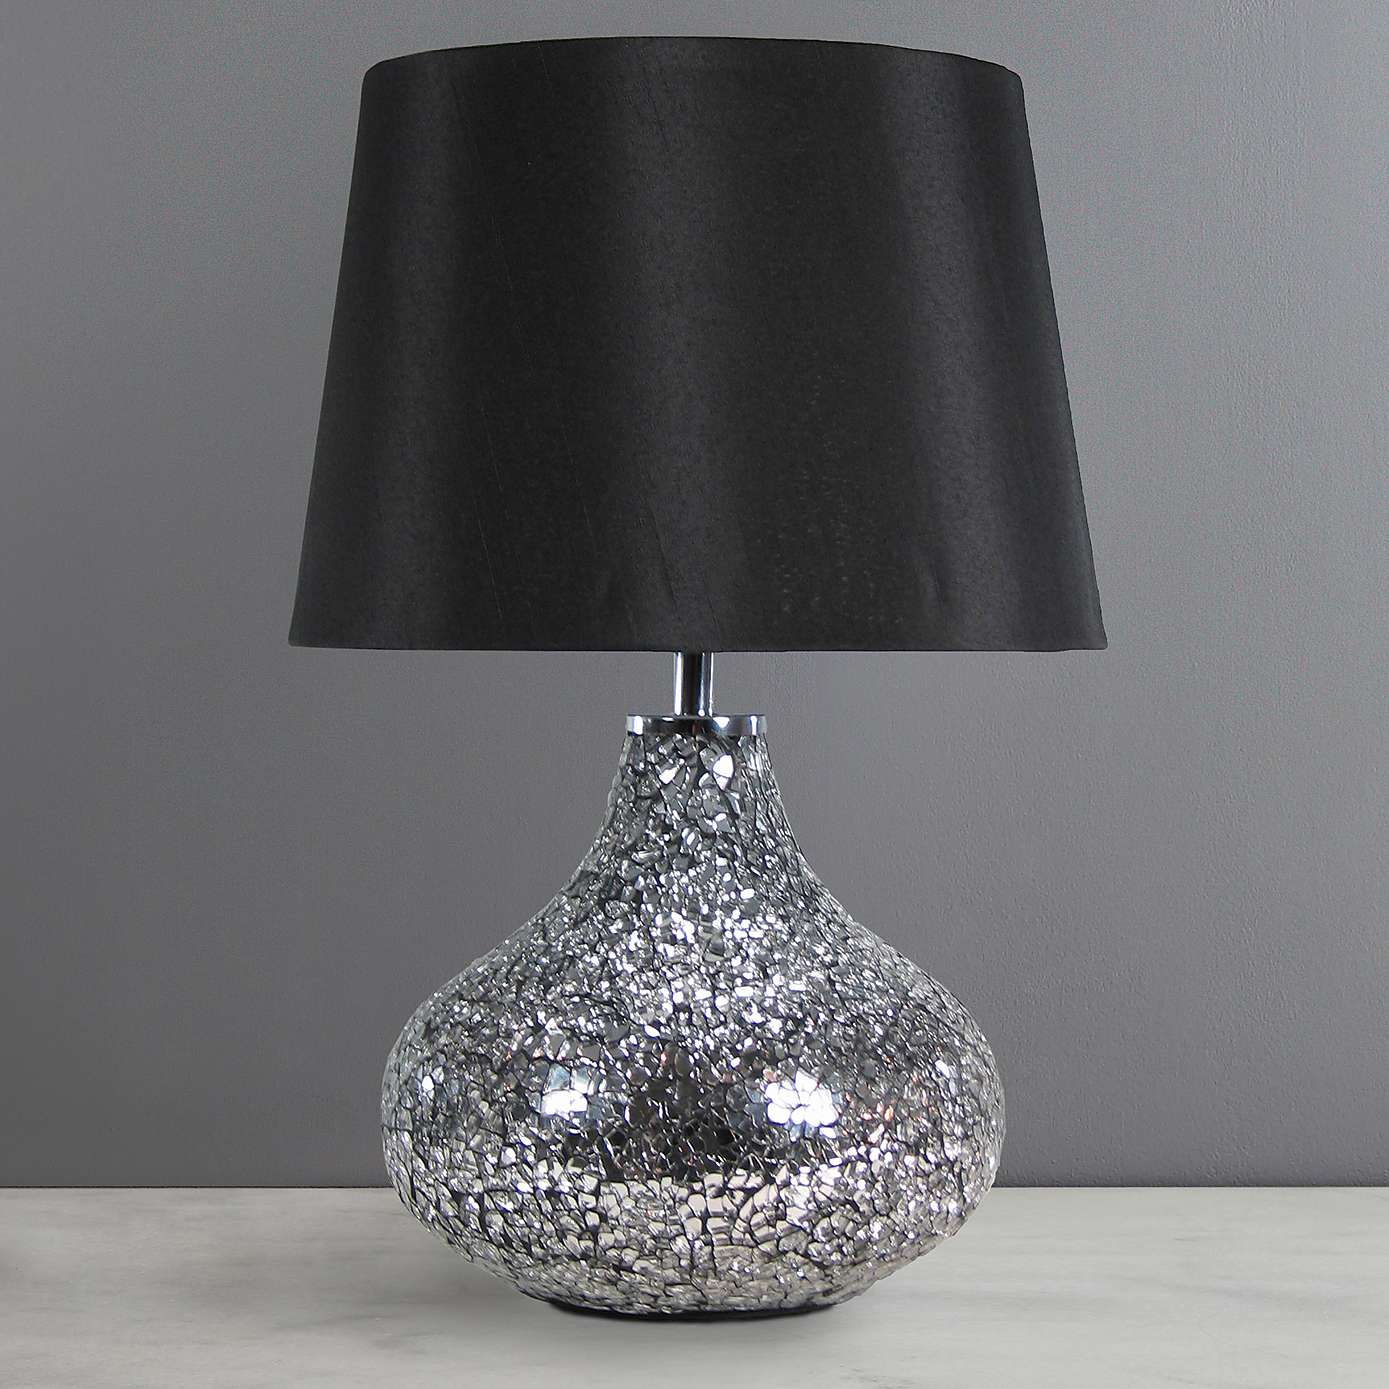 Crackle Glass Lamp Modulate Illumination To Your Home Space Warisan Lighting